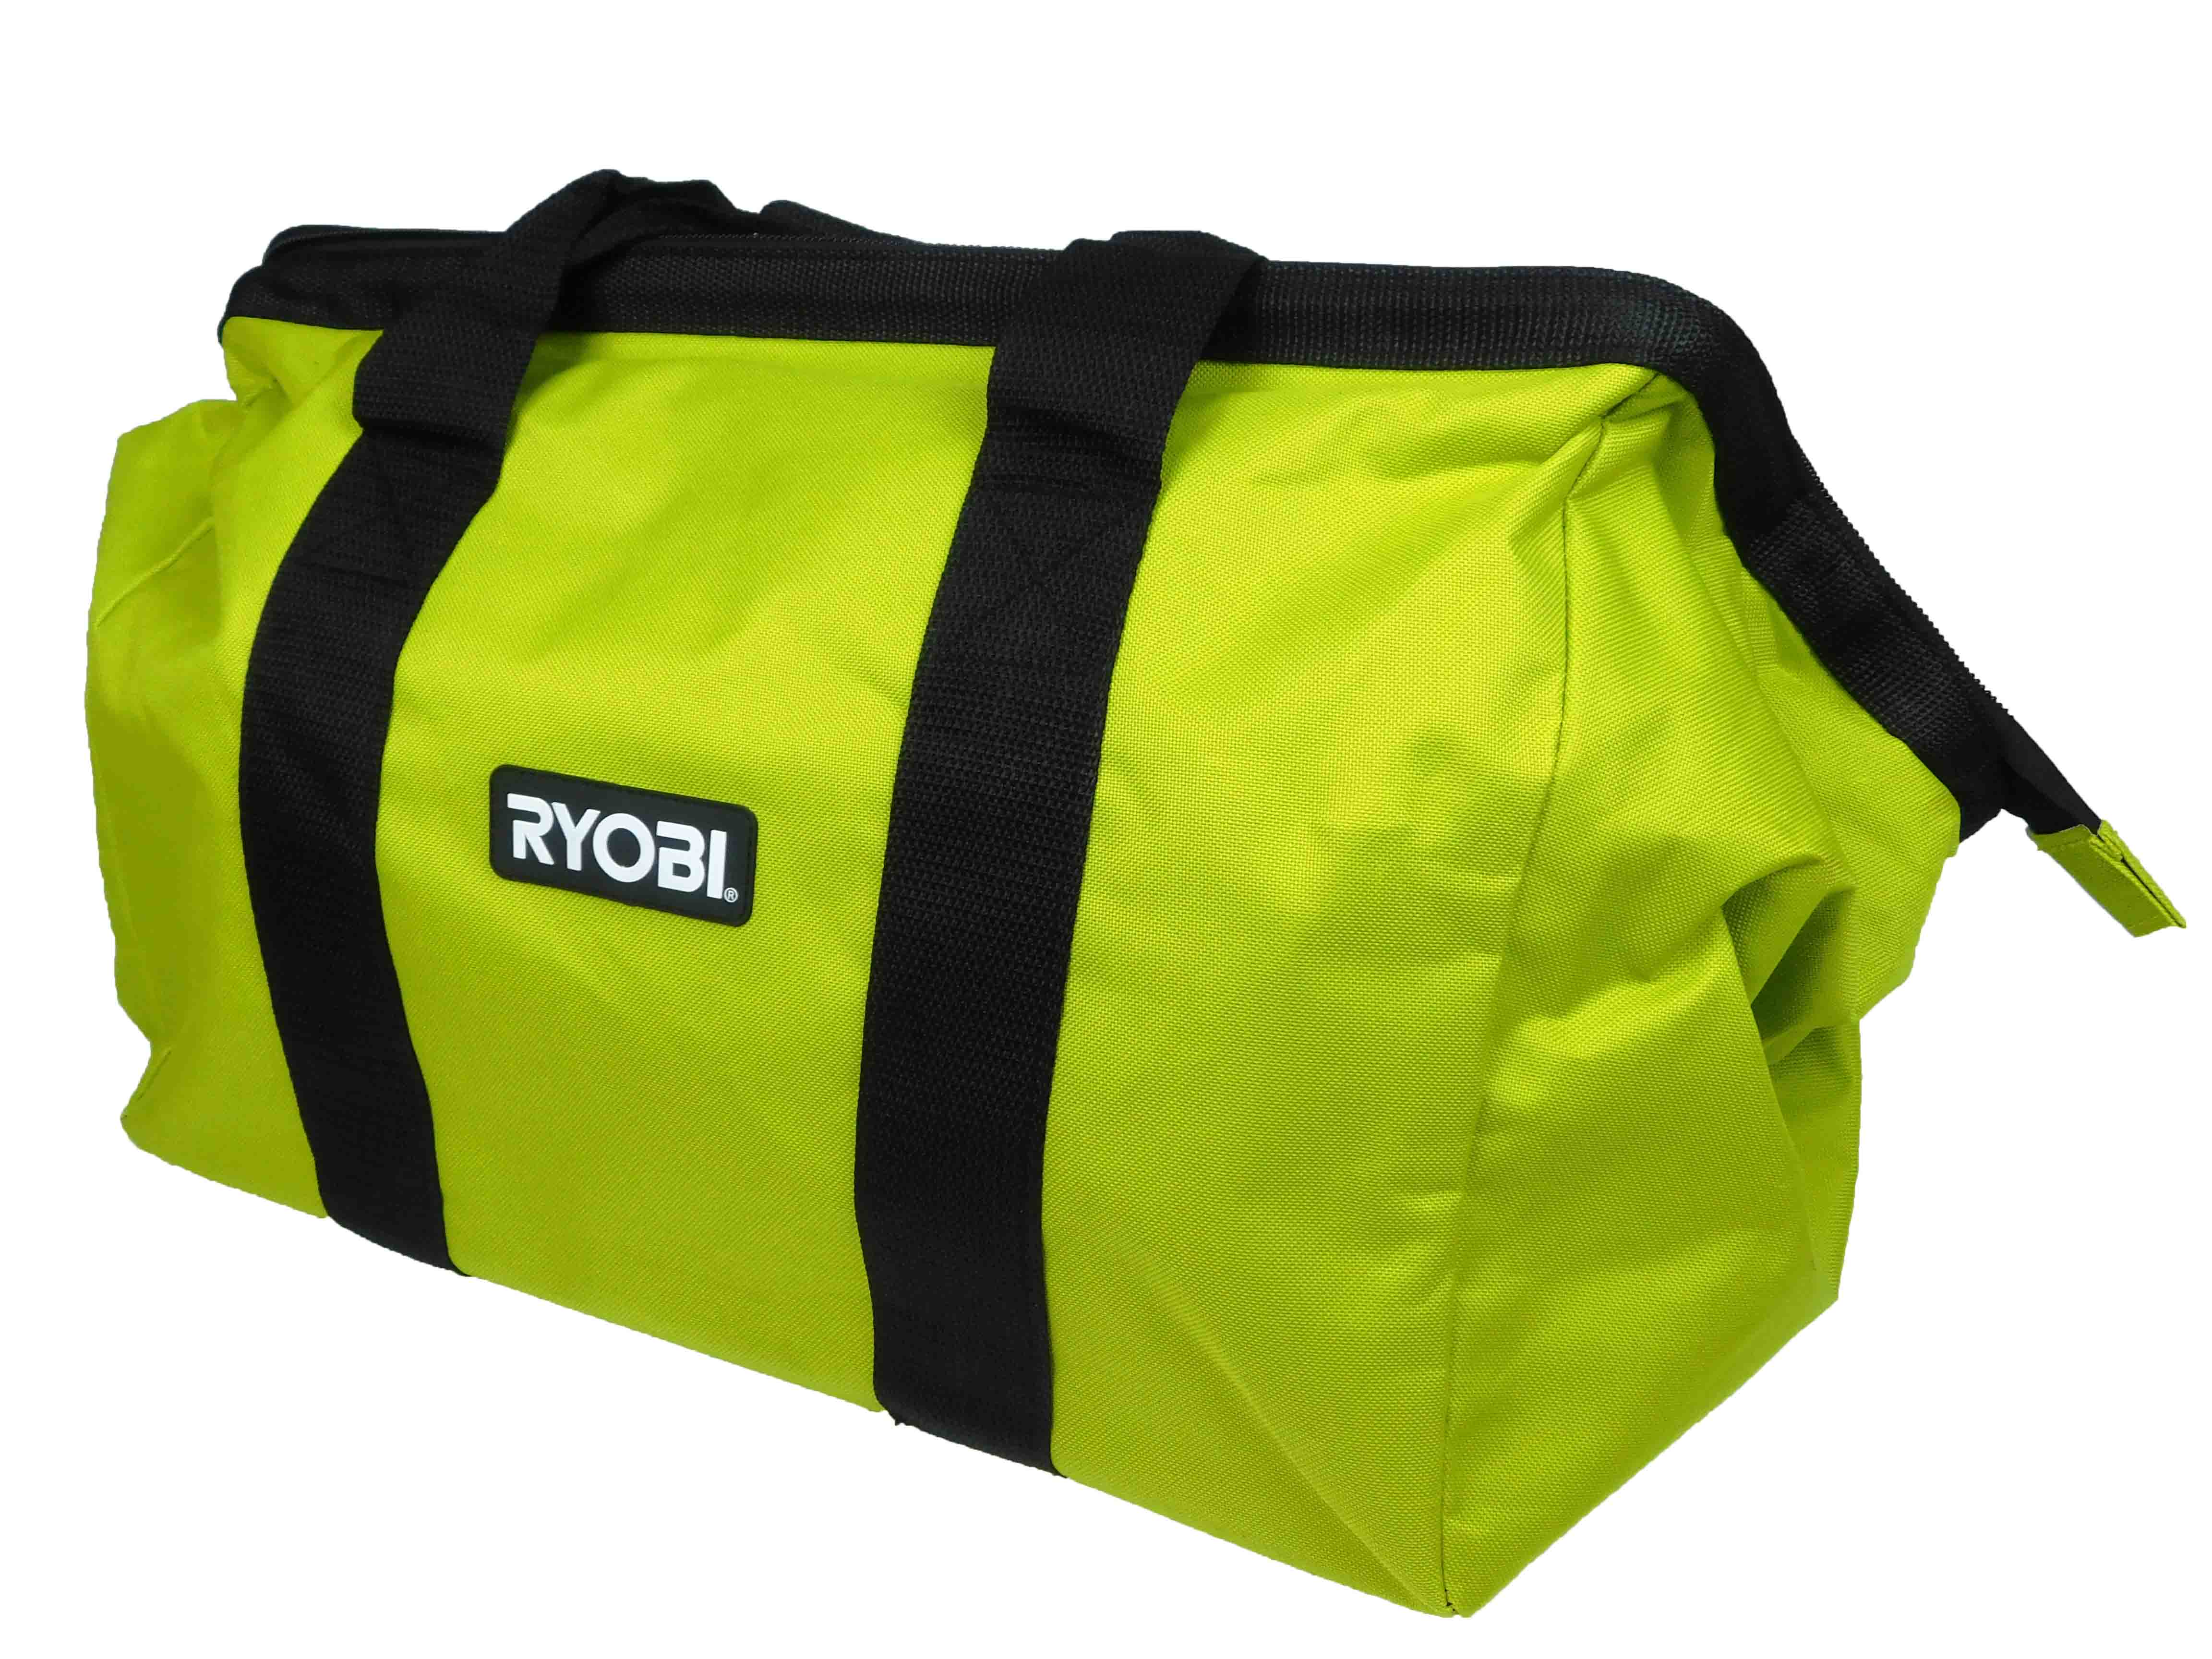 Ryobi-Contractors-Canvas-Wide-Mouth-Tool-Bag-image-3